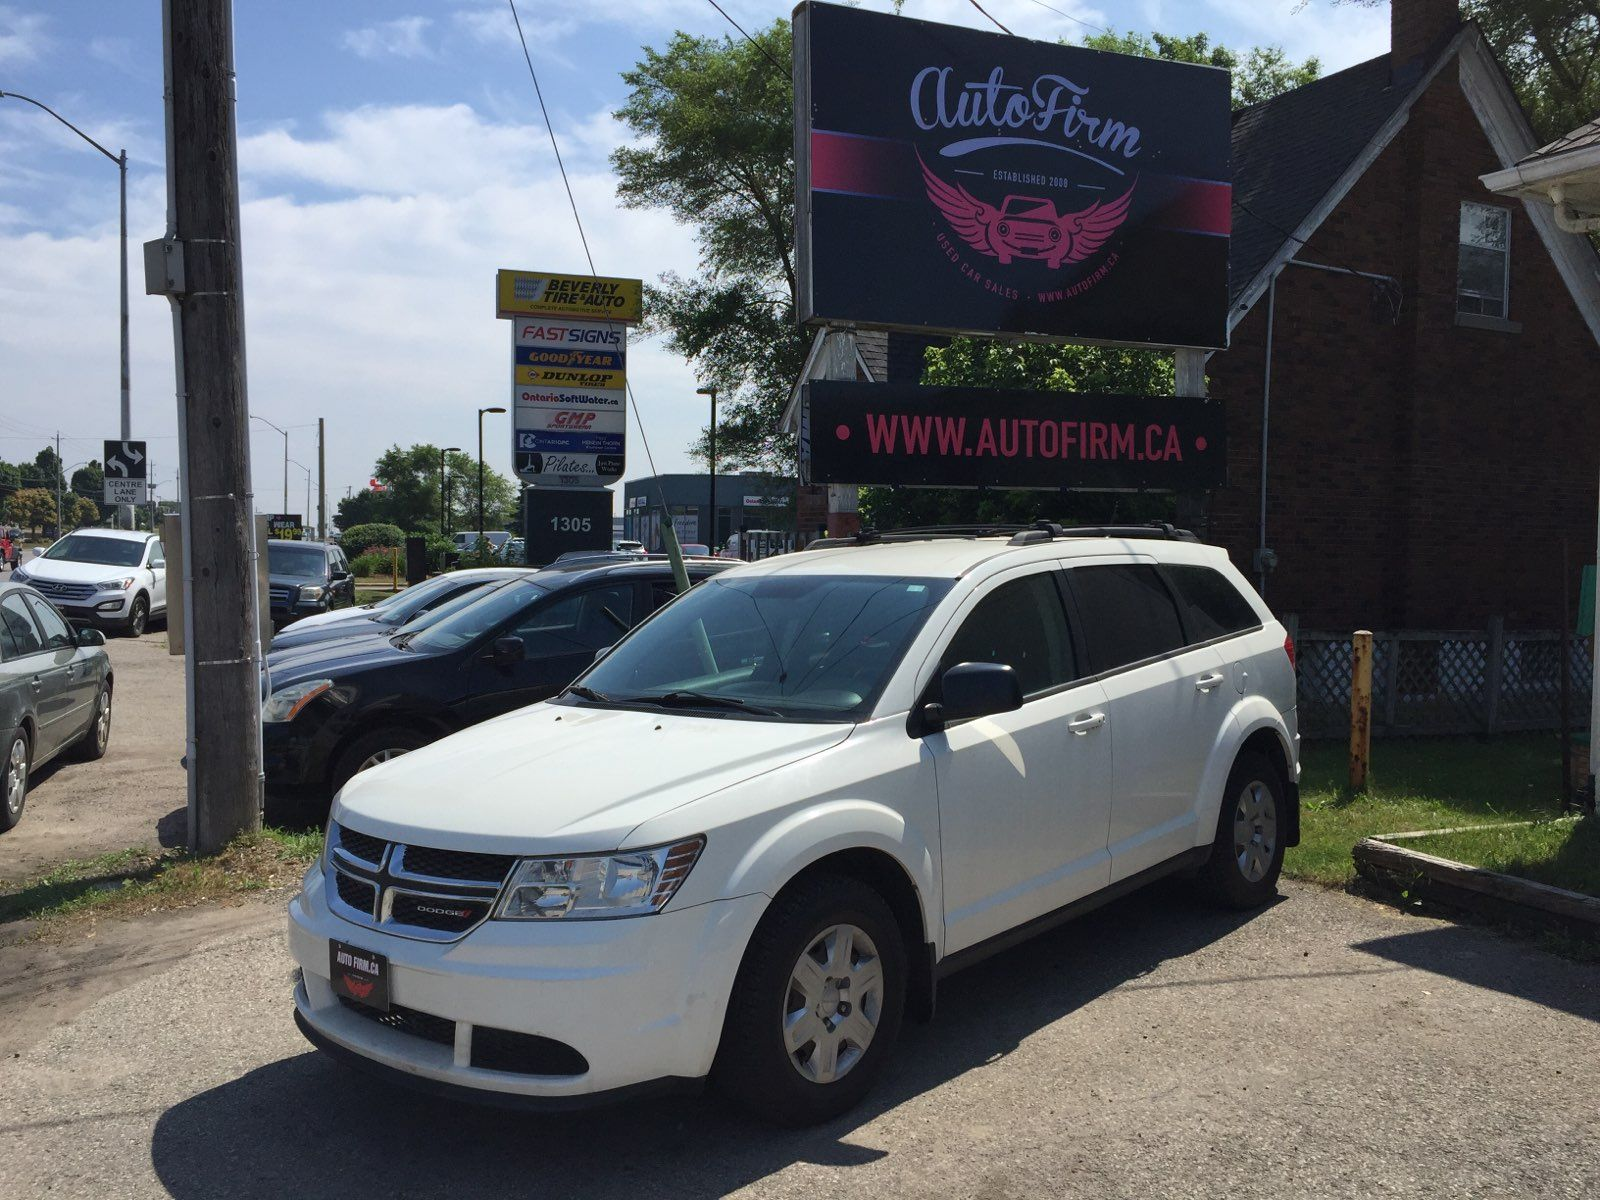 2012 Dodge Journey Main